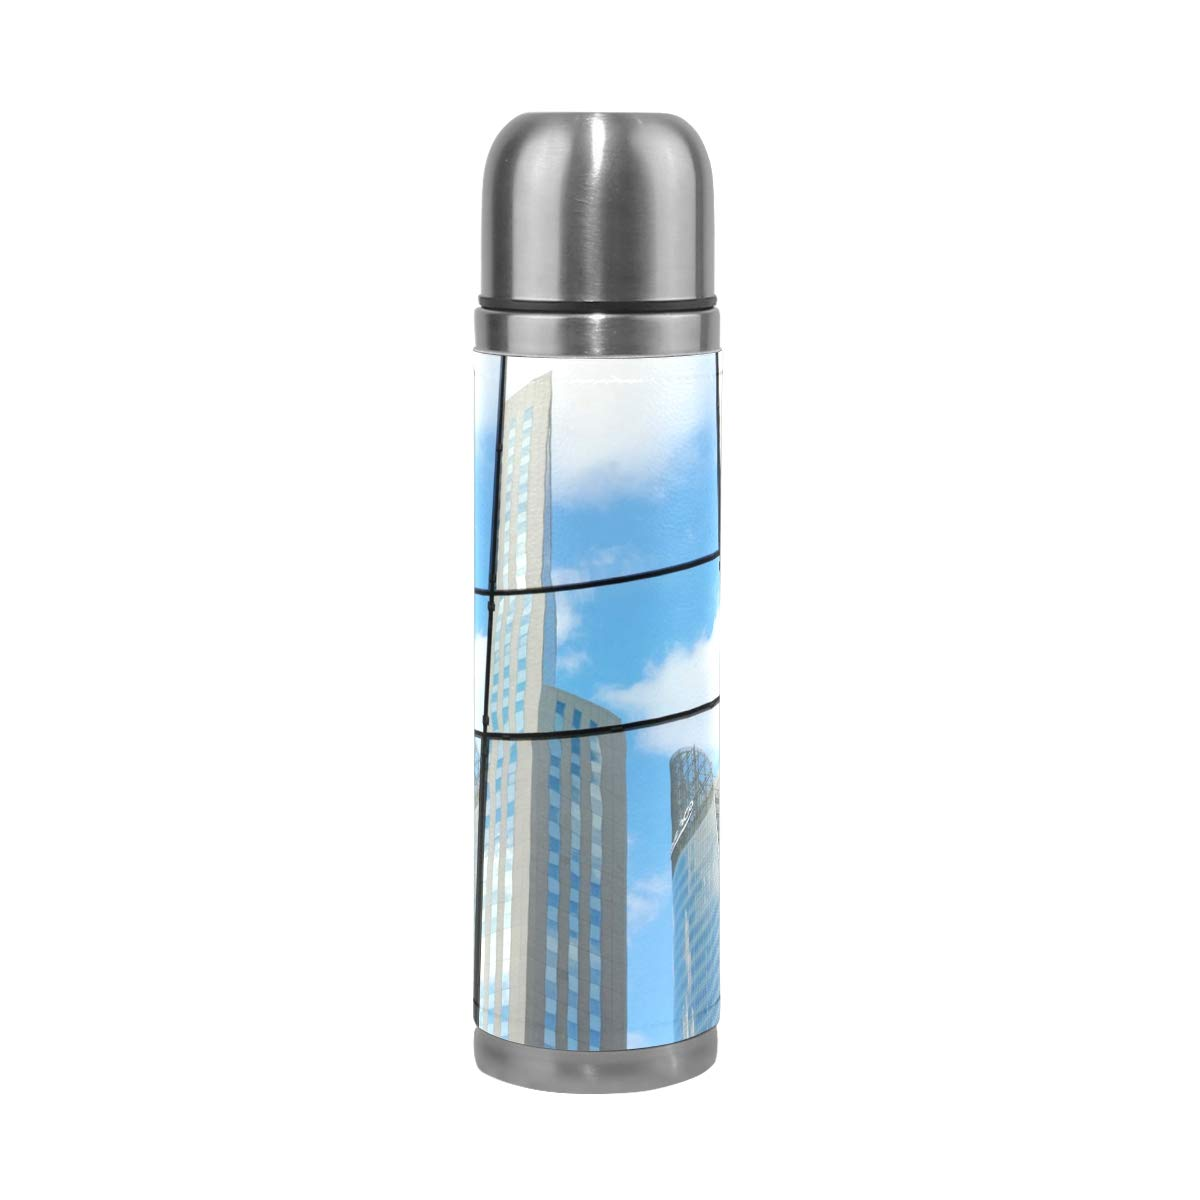 City Blue Window Sky Urban Abstract 500ML Stainless Steel Double Walled vacuum insulated water bottle Travel Mug Leather Cover Thermos 17 oz